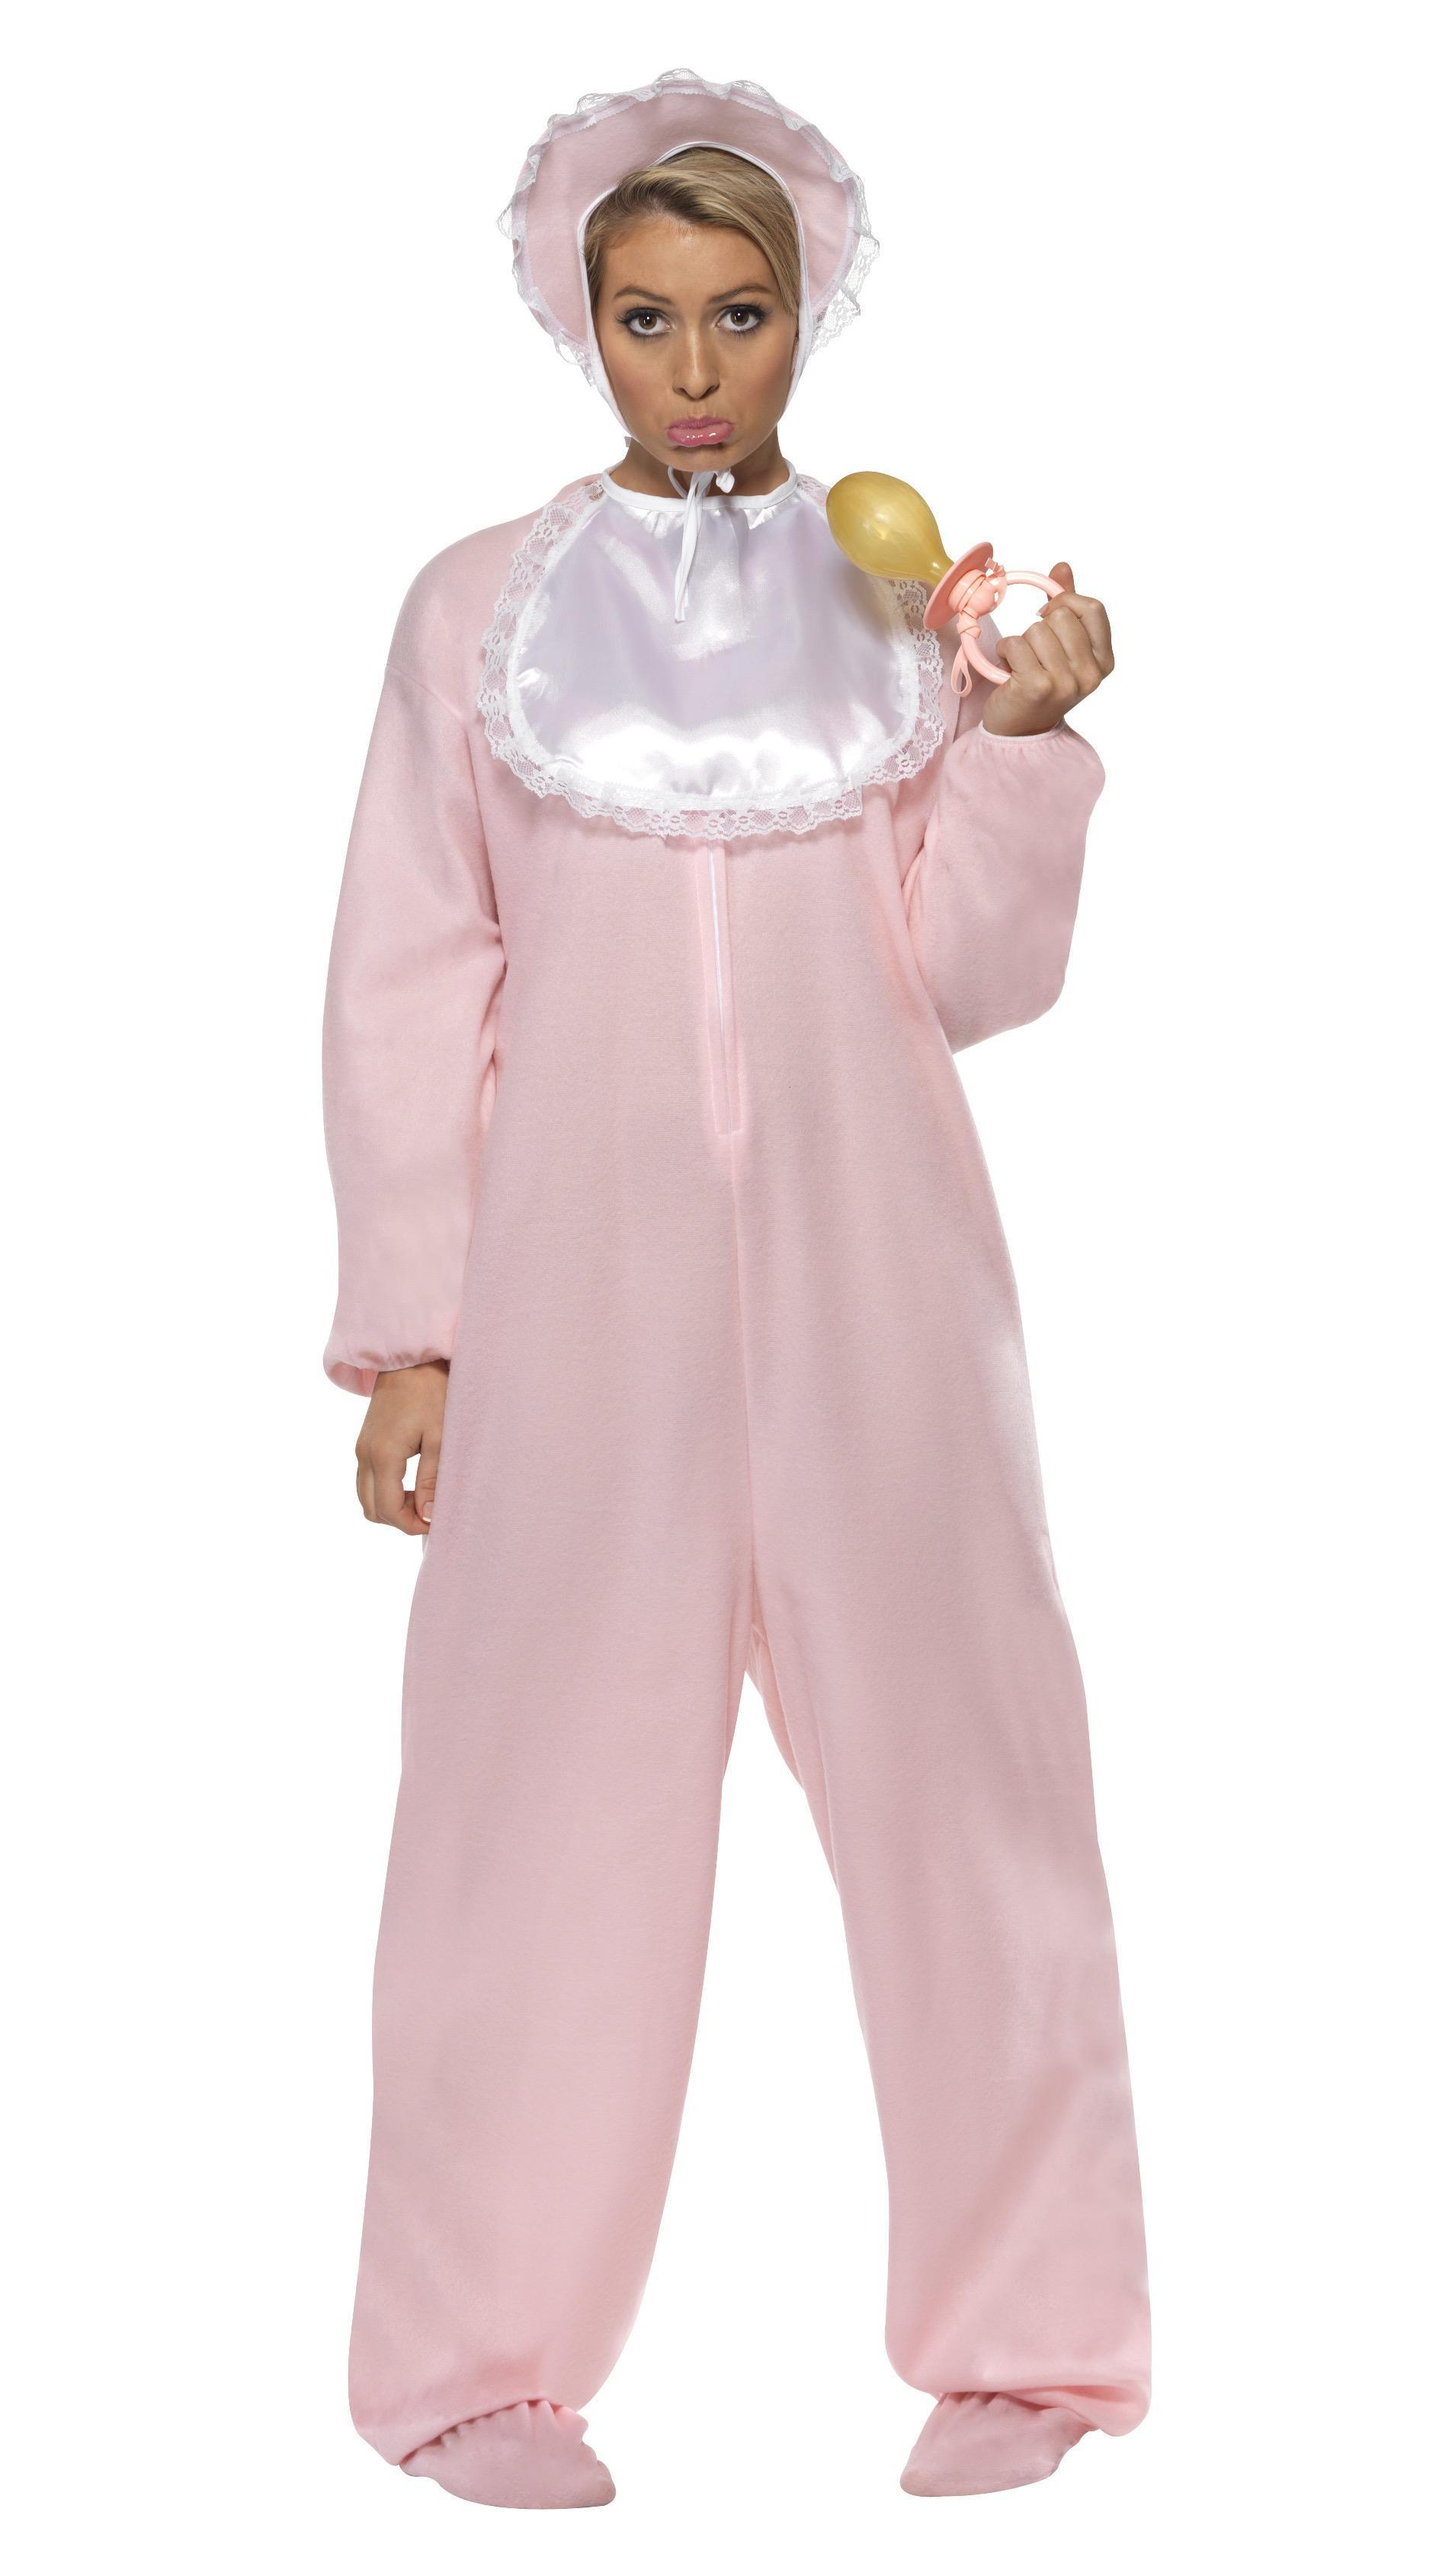 Baby Romper Costume Pink